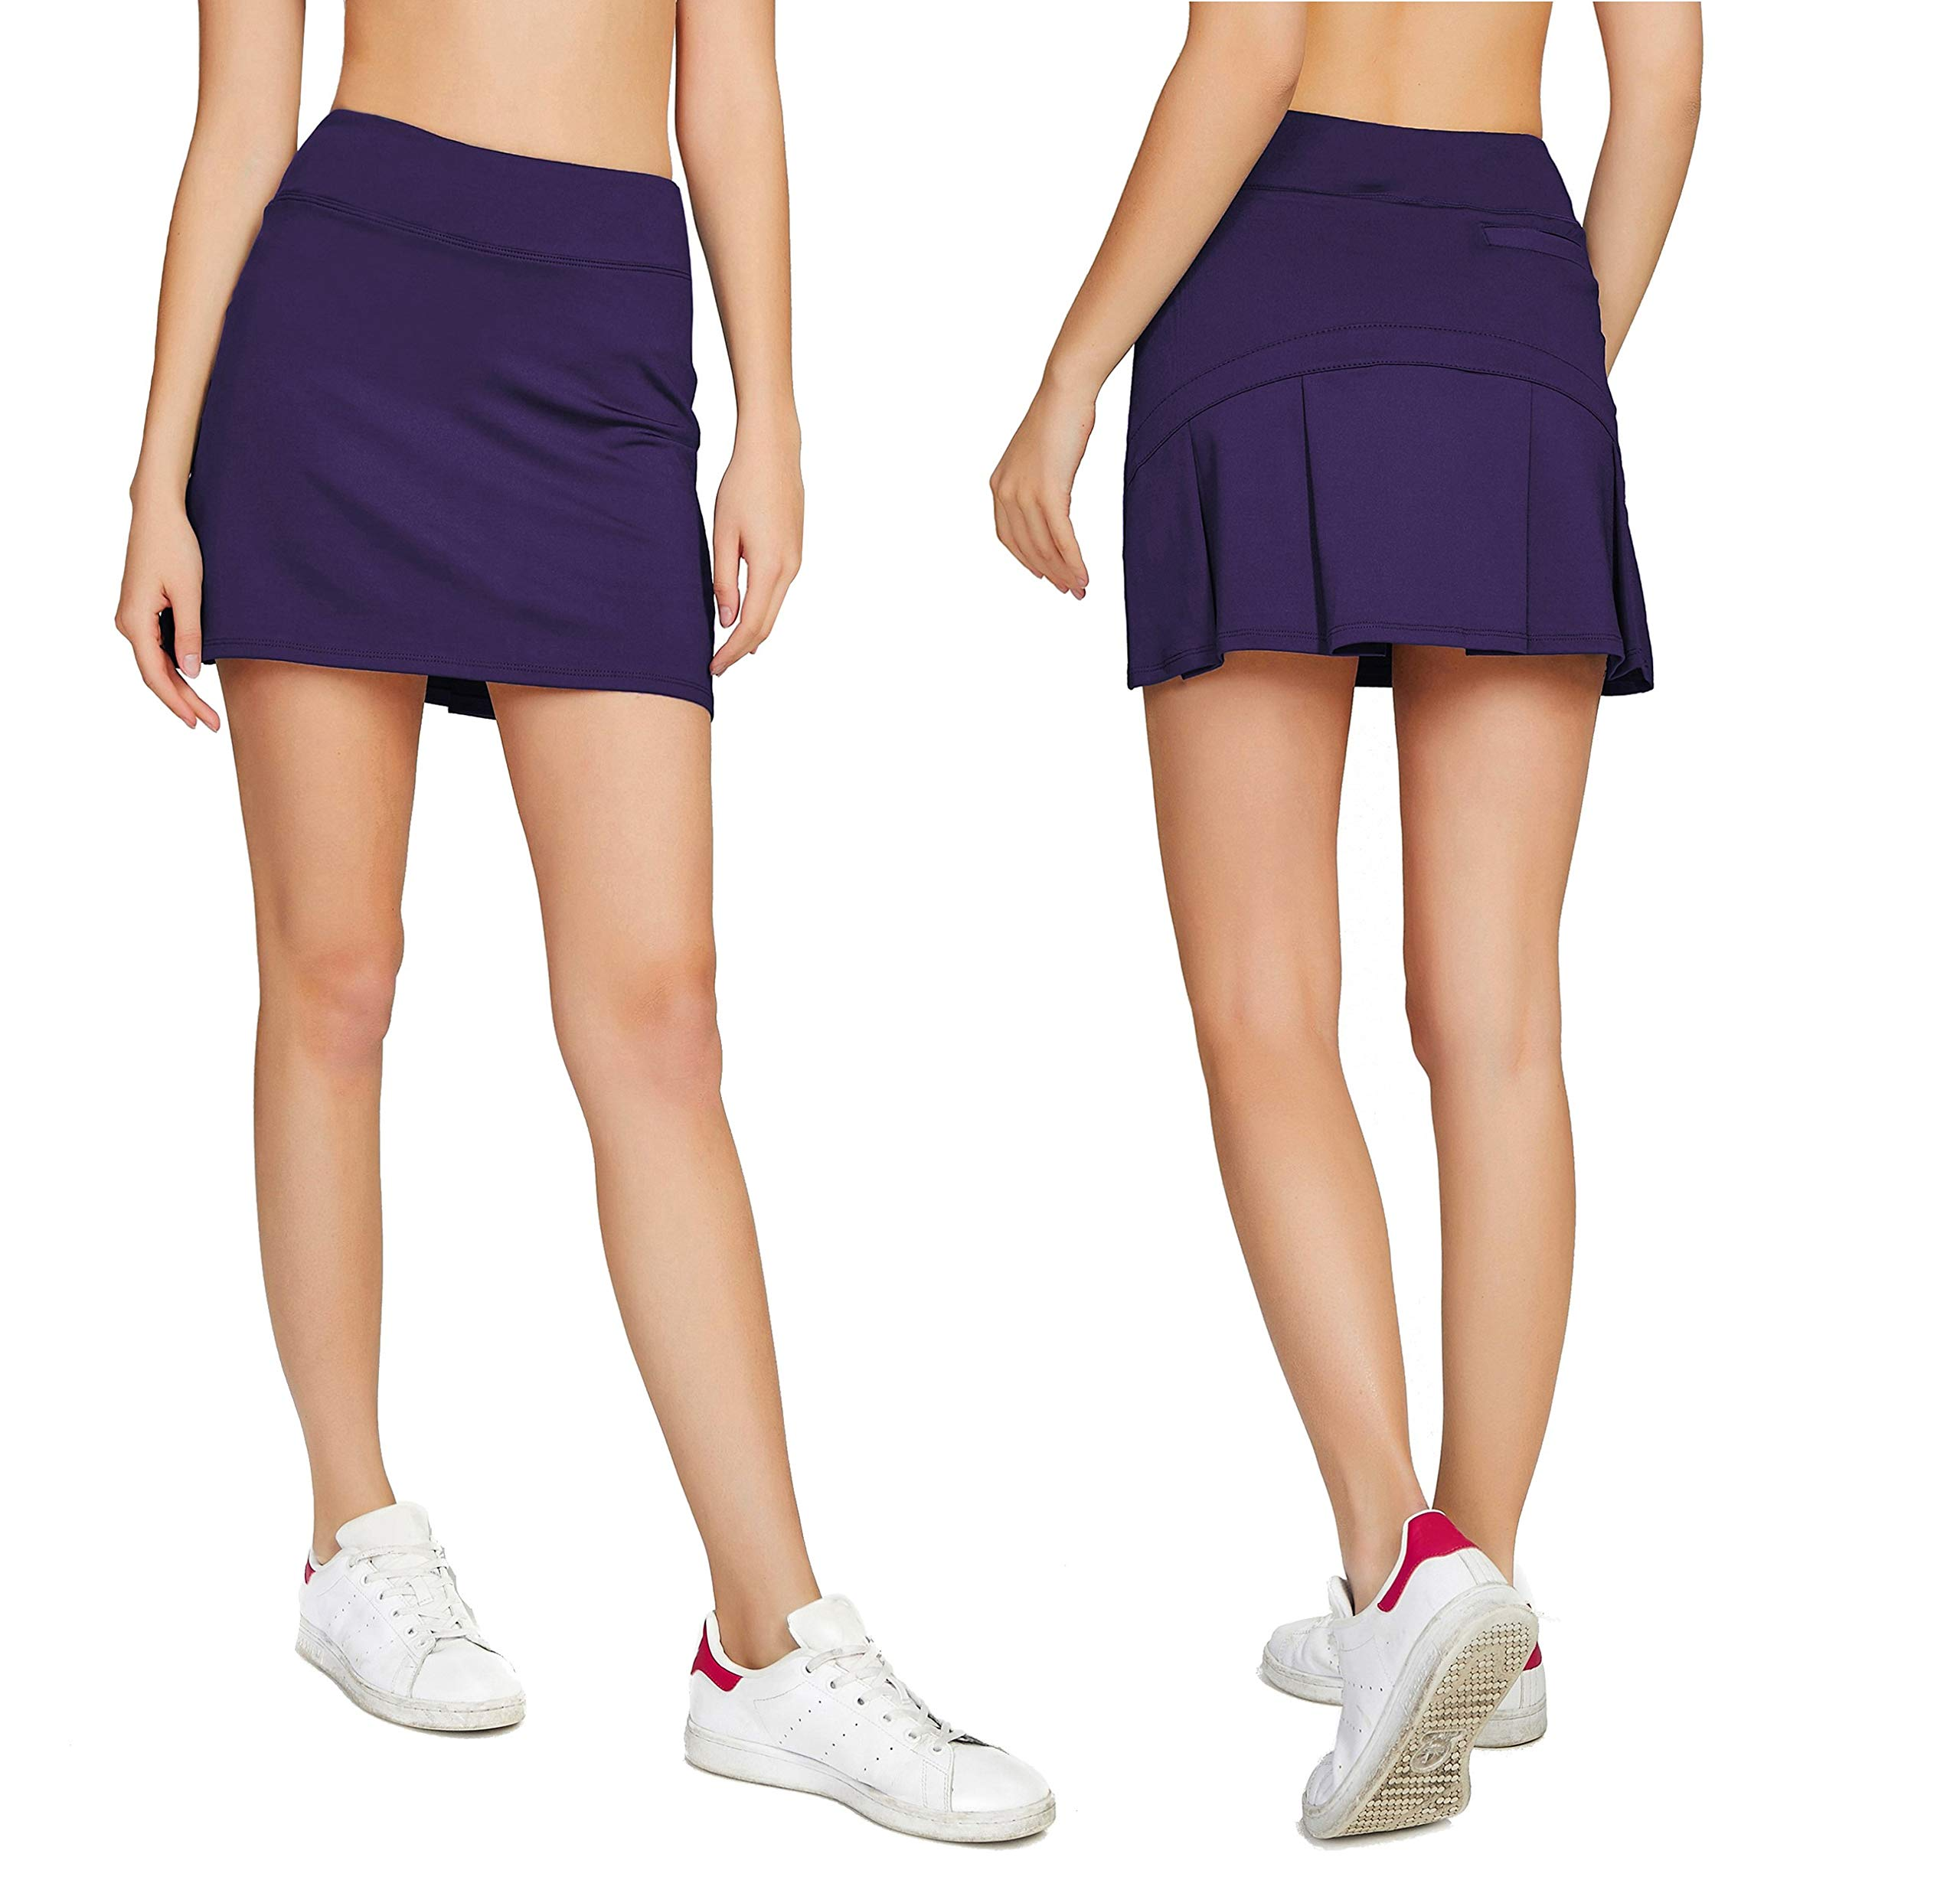 Cityoung Women's Casual Pleated Tennis Golf Skirt with Underneath Shorts Running Skorts d_pl s